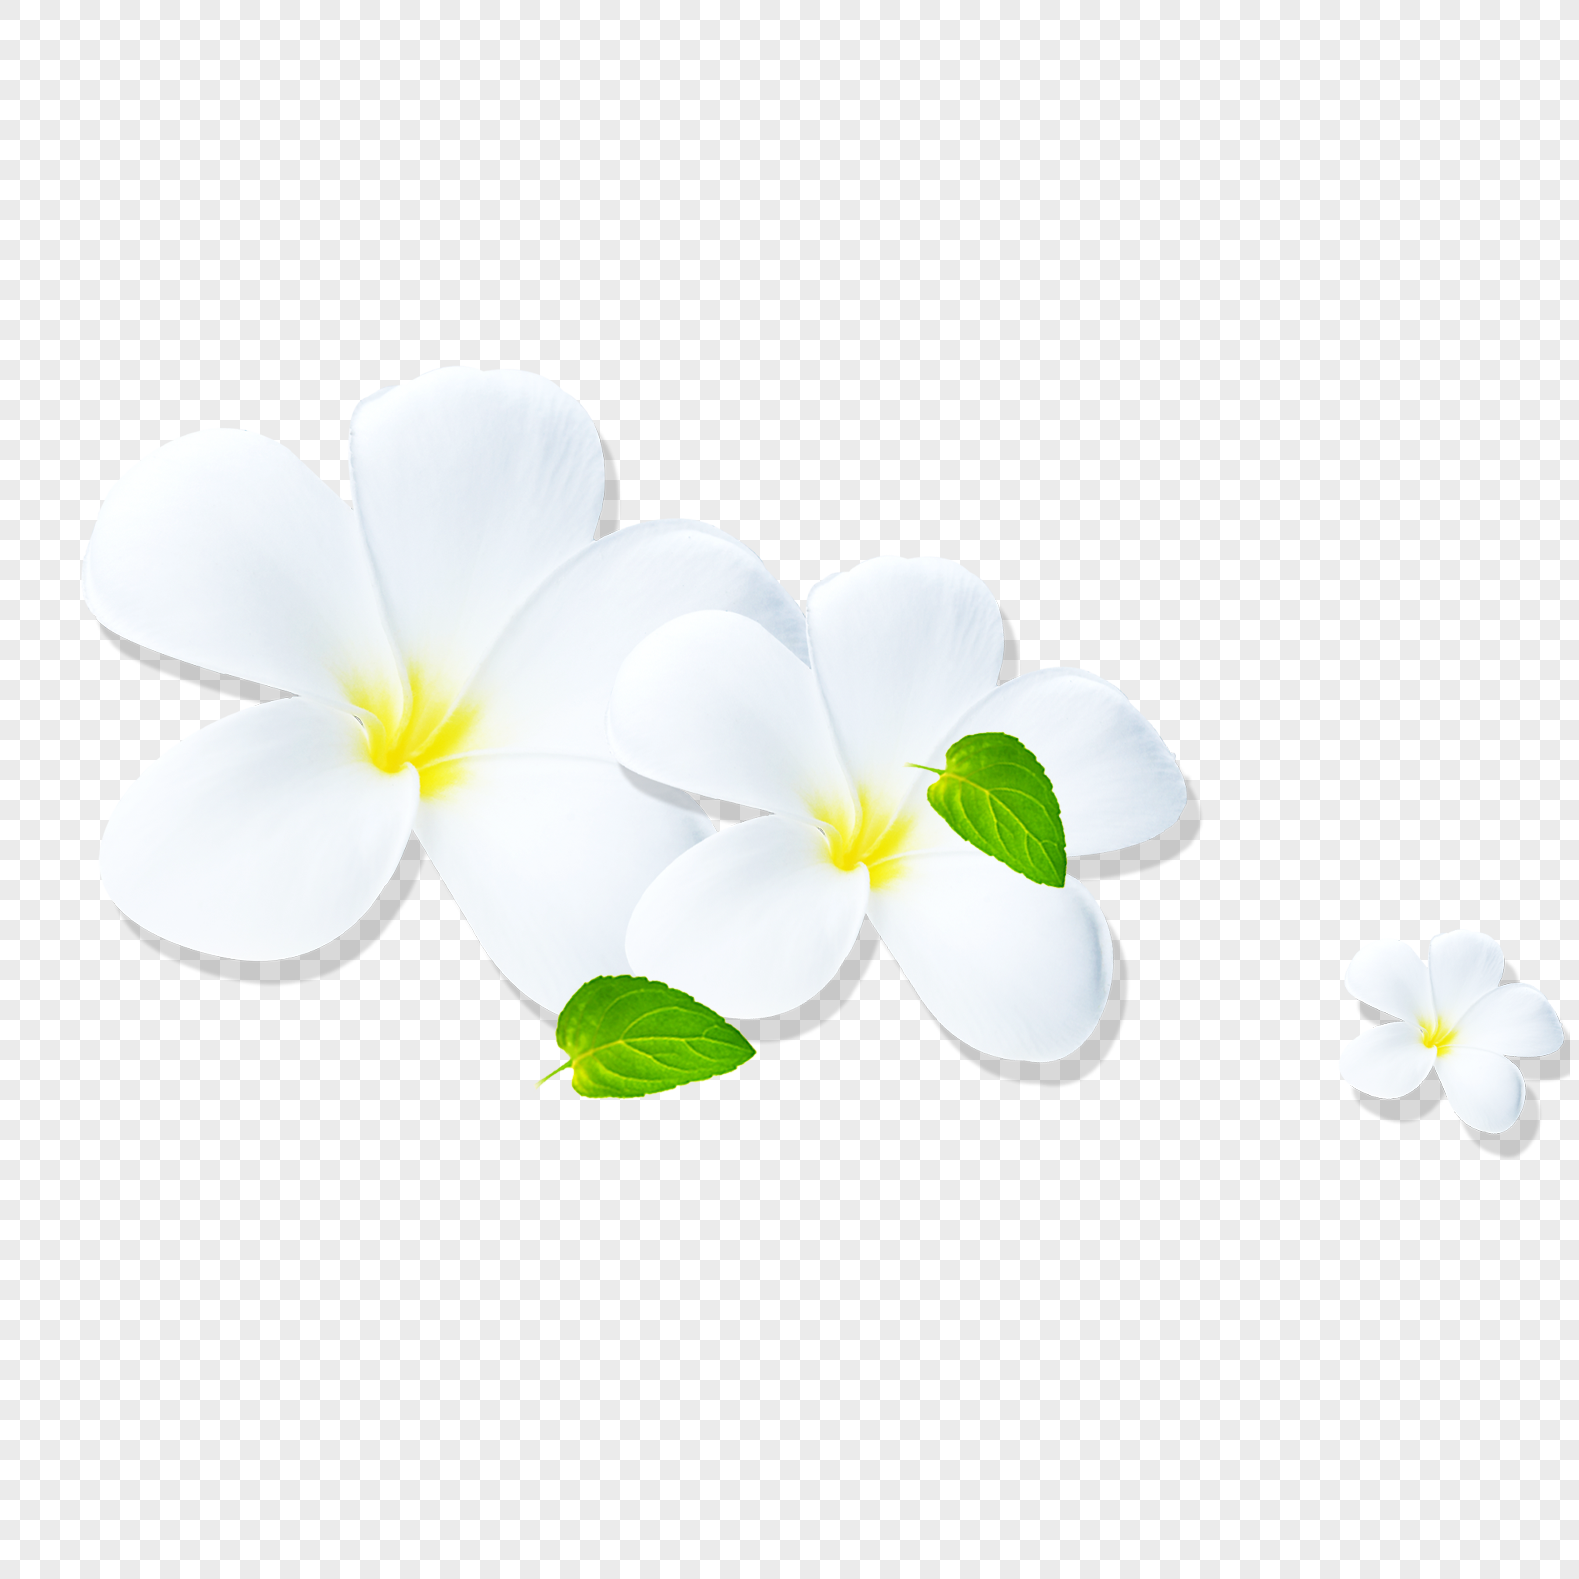 White Flower Png Imagepicture Free Download 400698019lovepik